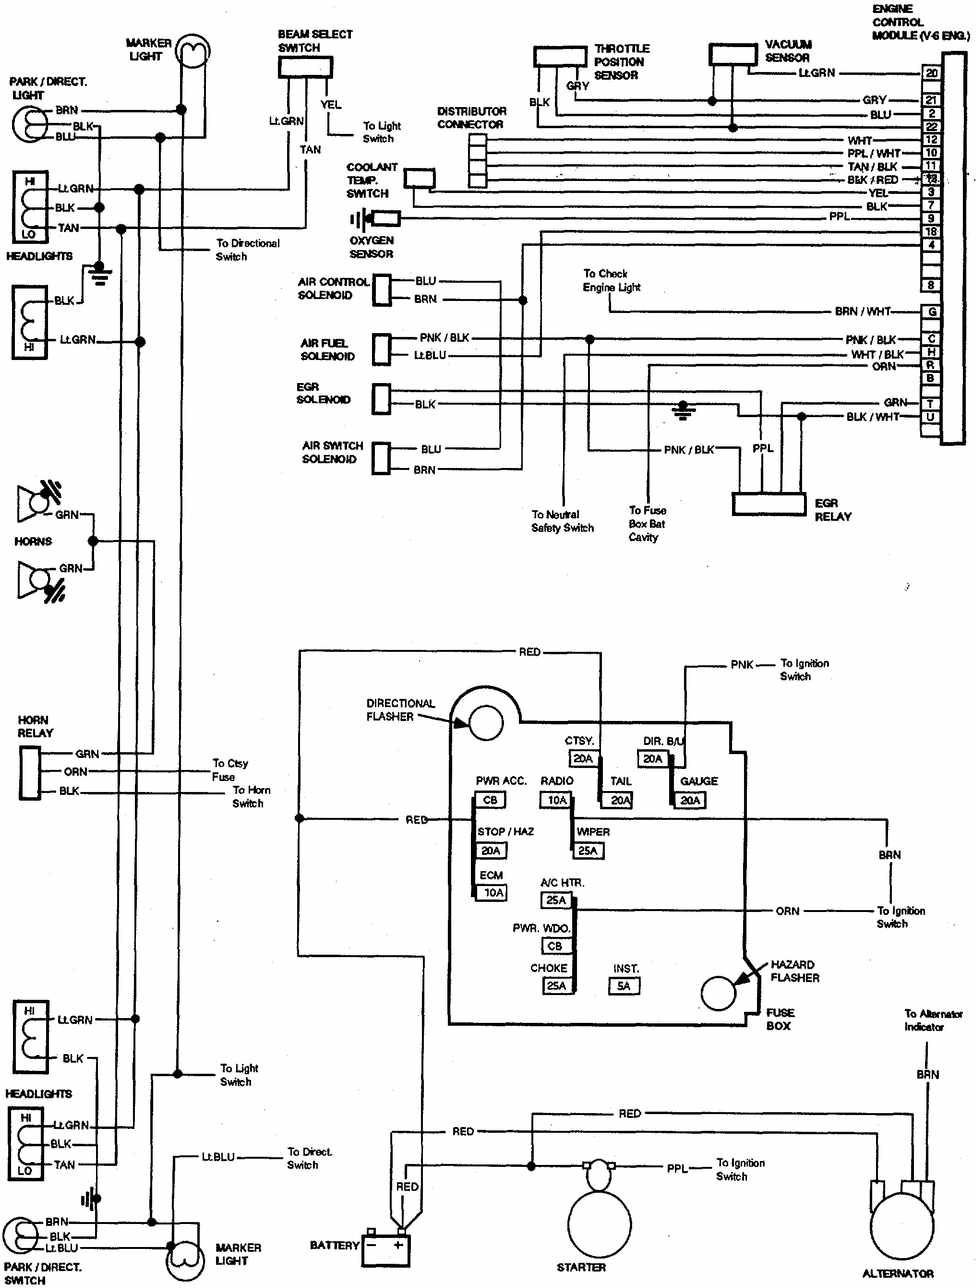 medium resolution of herein we can see the 1981 1987 chevrolet v8 trucks electrical chevy truck wiring harness diagram